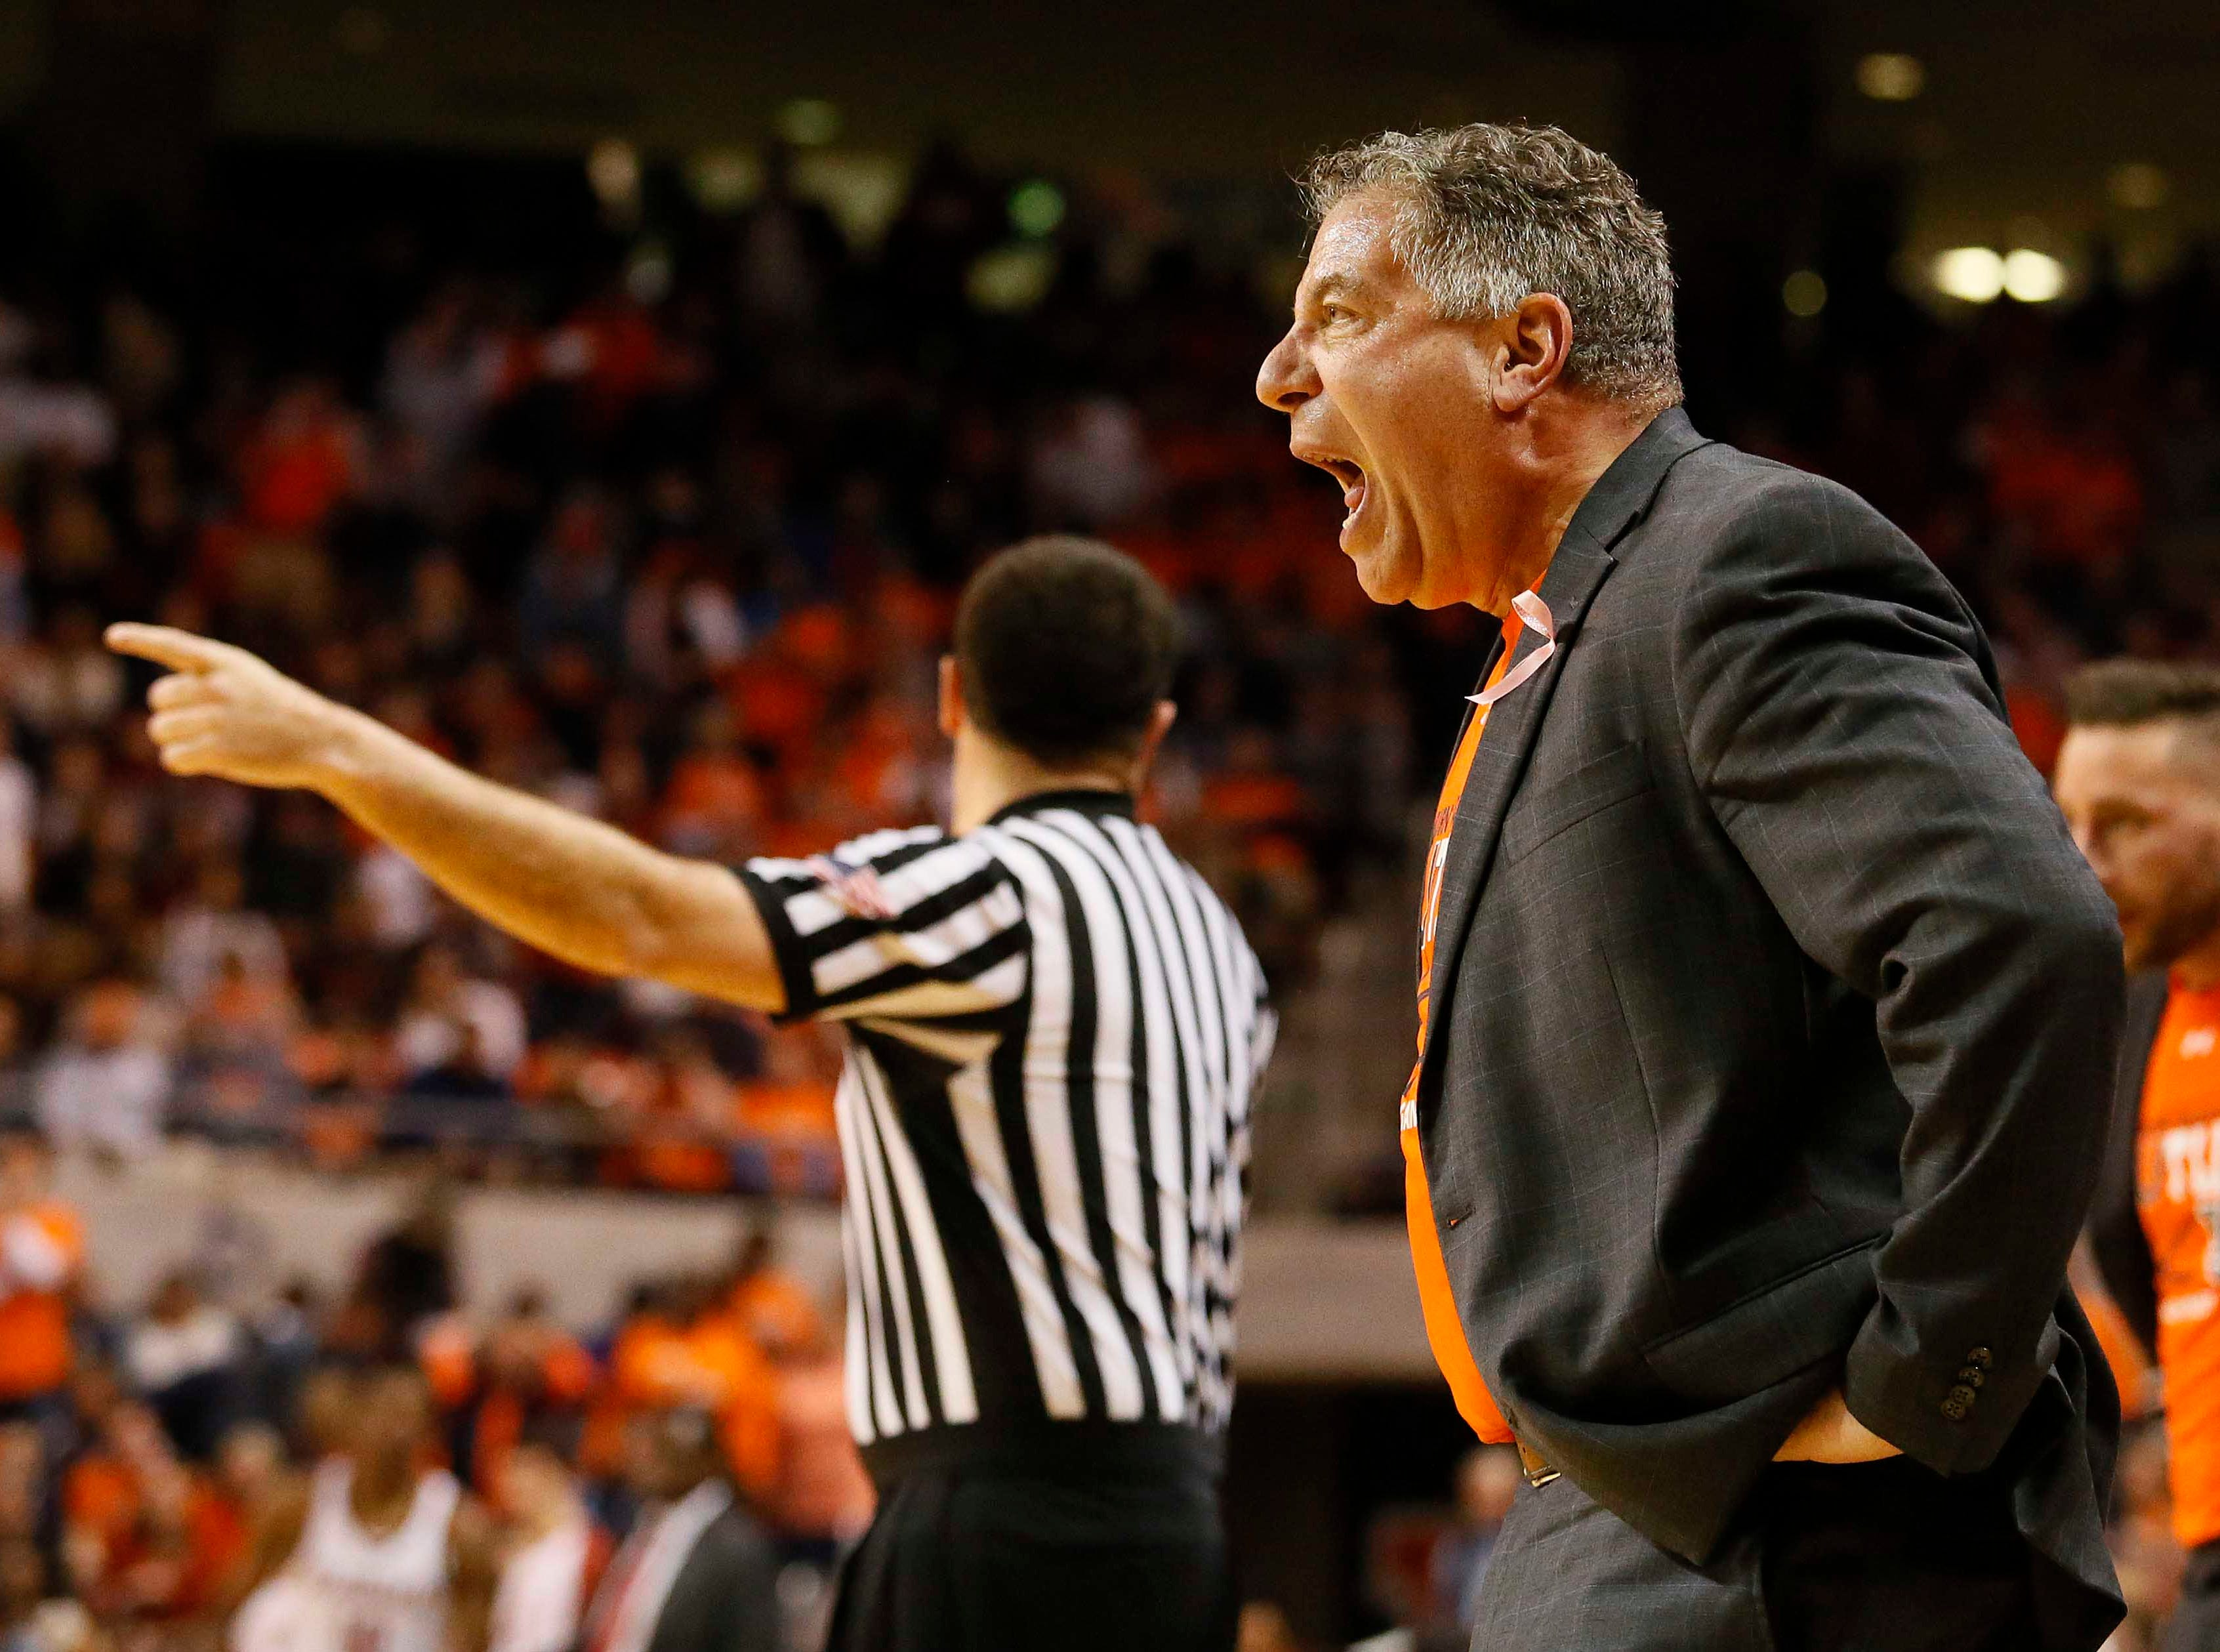 Feb 2, 2019; Auburn, AL, USA; Auburn Tigers head coach Bruce Pearl reacts after a foul was called on the Tigers during first half against the Alabama Crimson Tide at Auburn Arena. Mandatory Credit: John Reed-USA TODAY Sports